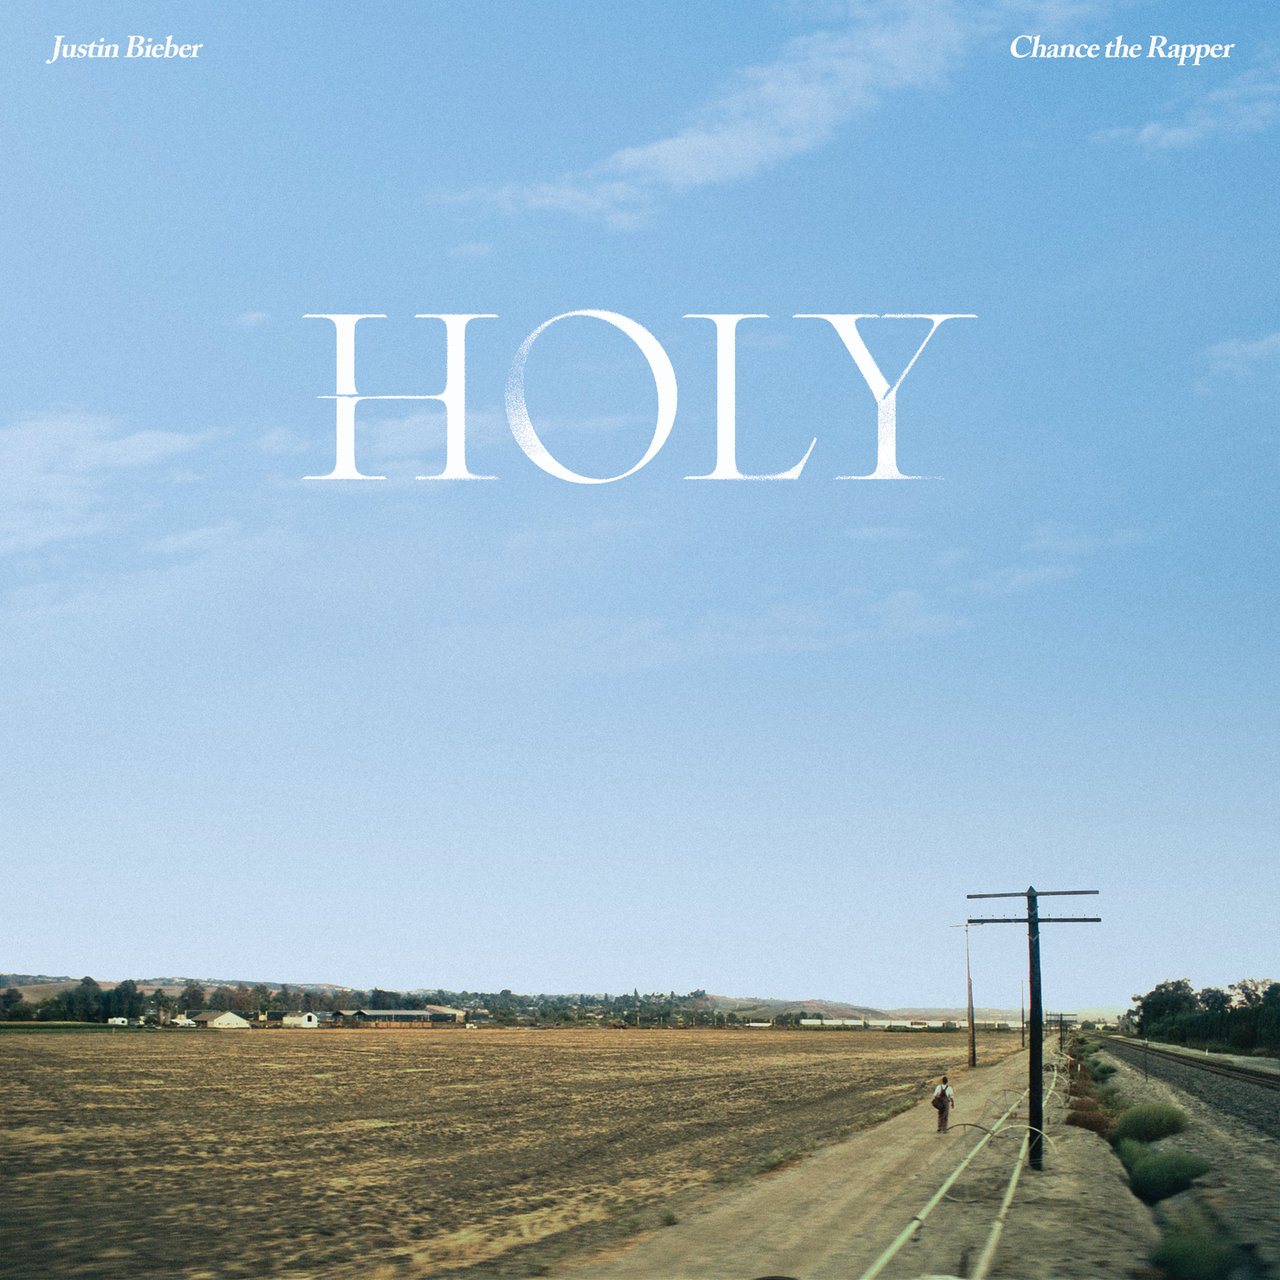 Justin Bieber x Chance the Rapper - Holy.mp3